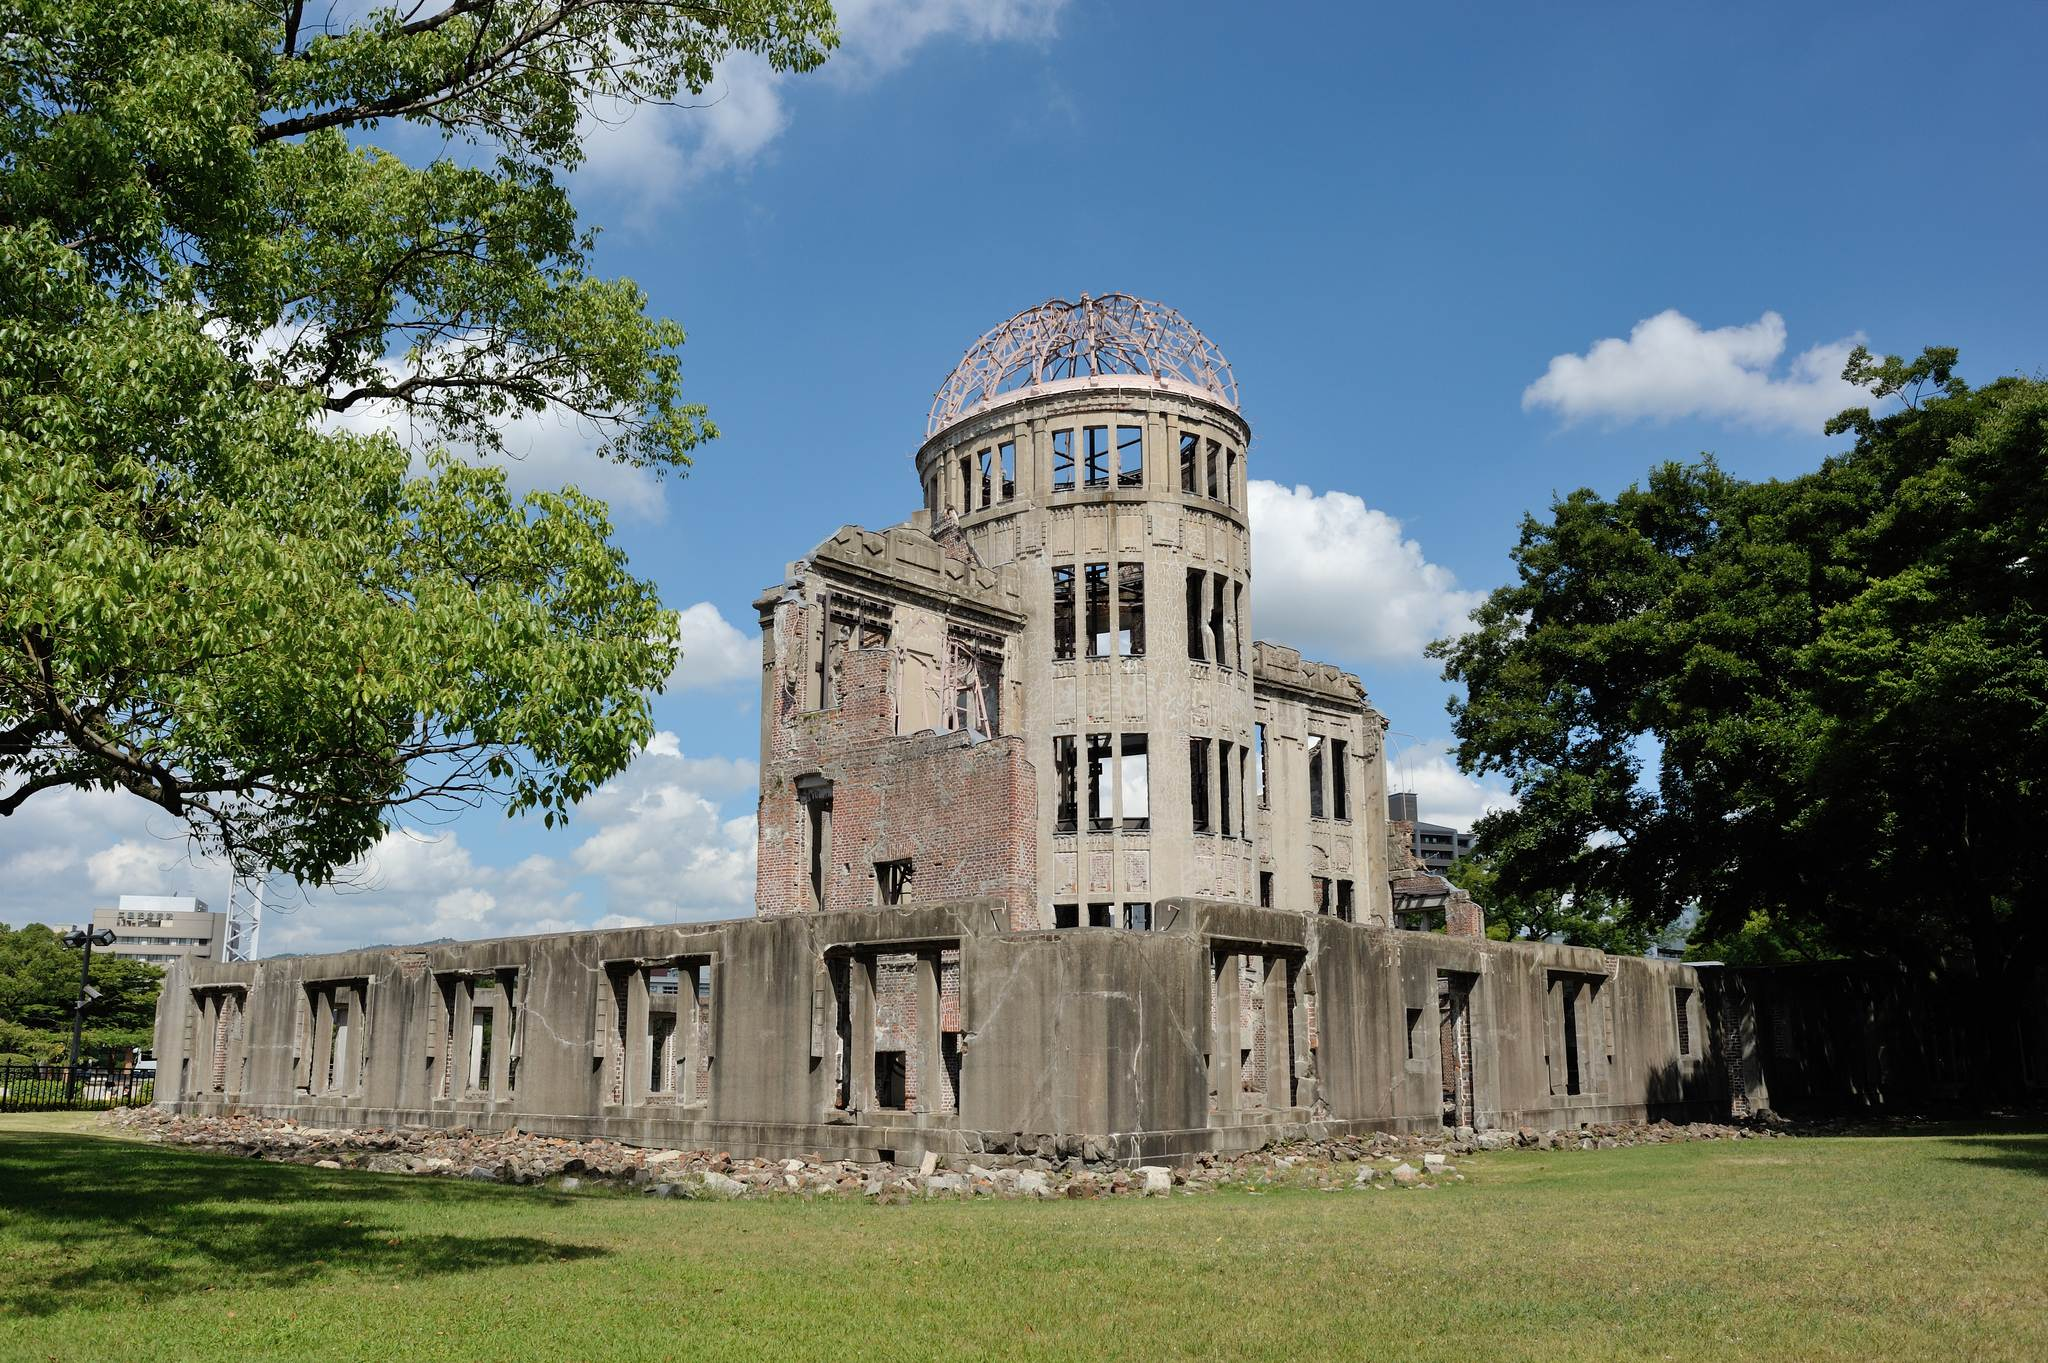 a bomb dome1 Walk around Genbaku Dome in Hiroshima